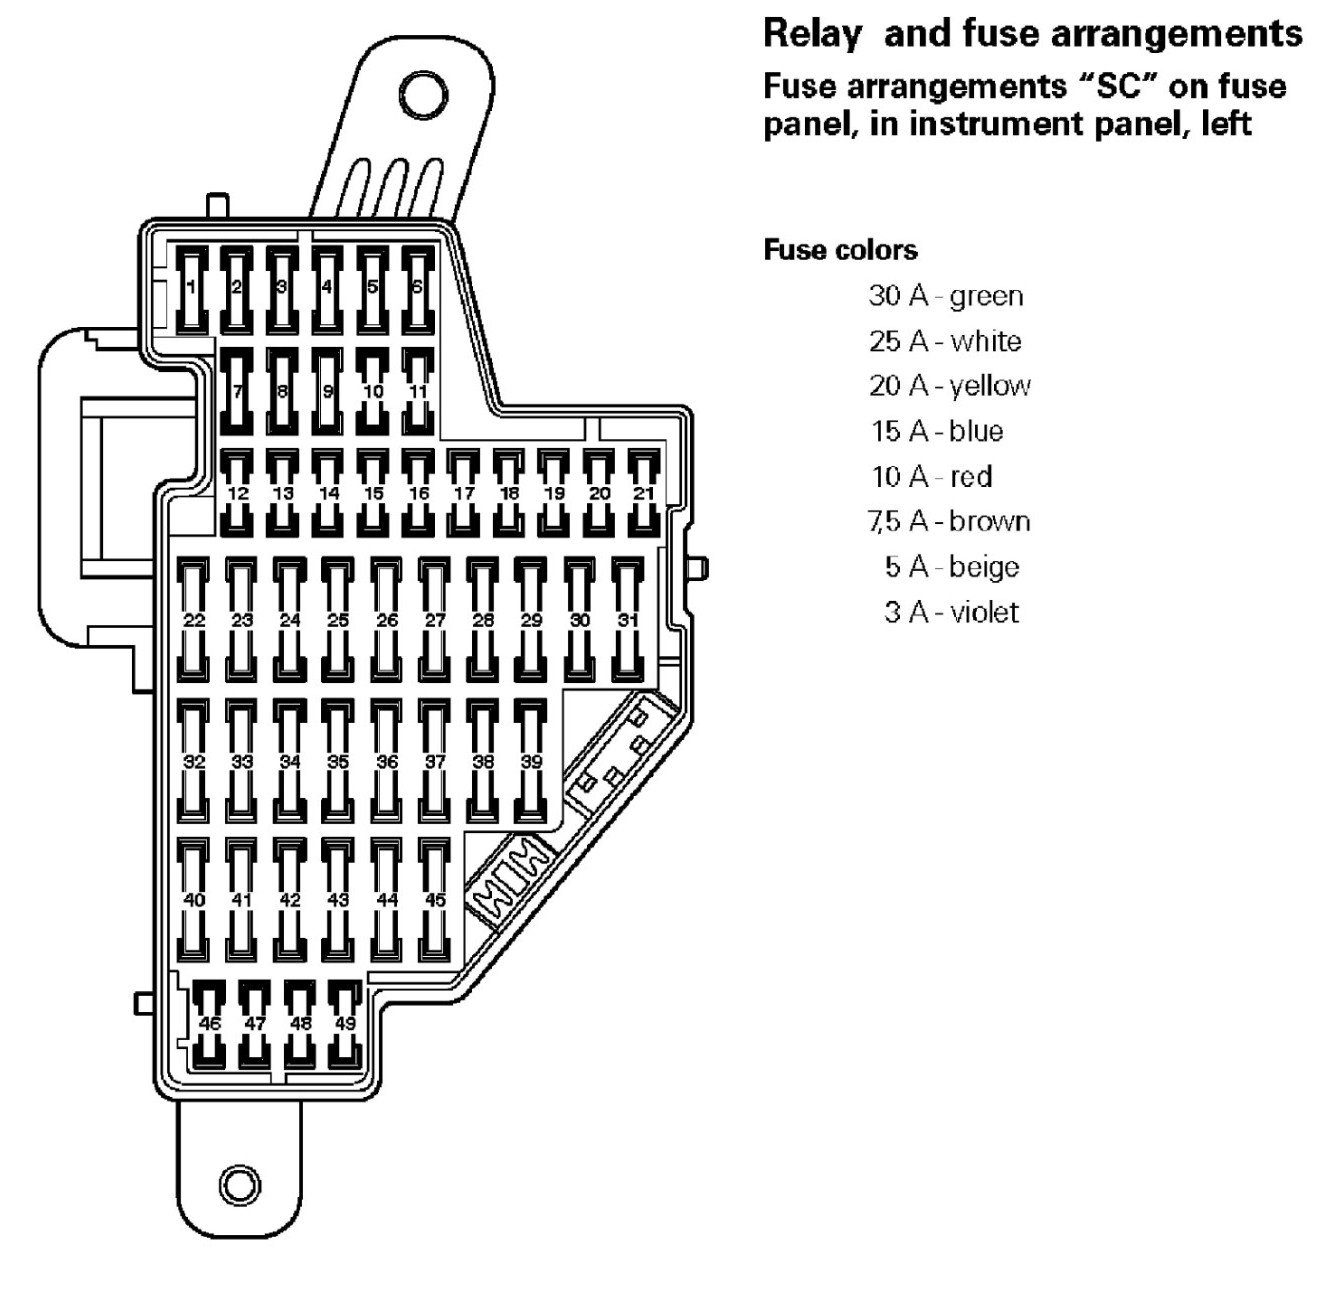 2011 01 07_205849_fuse_0000 2006 vw jetta fuse box 2006 vw jetta intercooler \u2022 wiring diagrams 2007 vw gti fuse box diagram at crackthecode.co